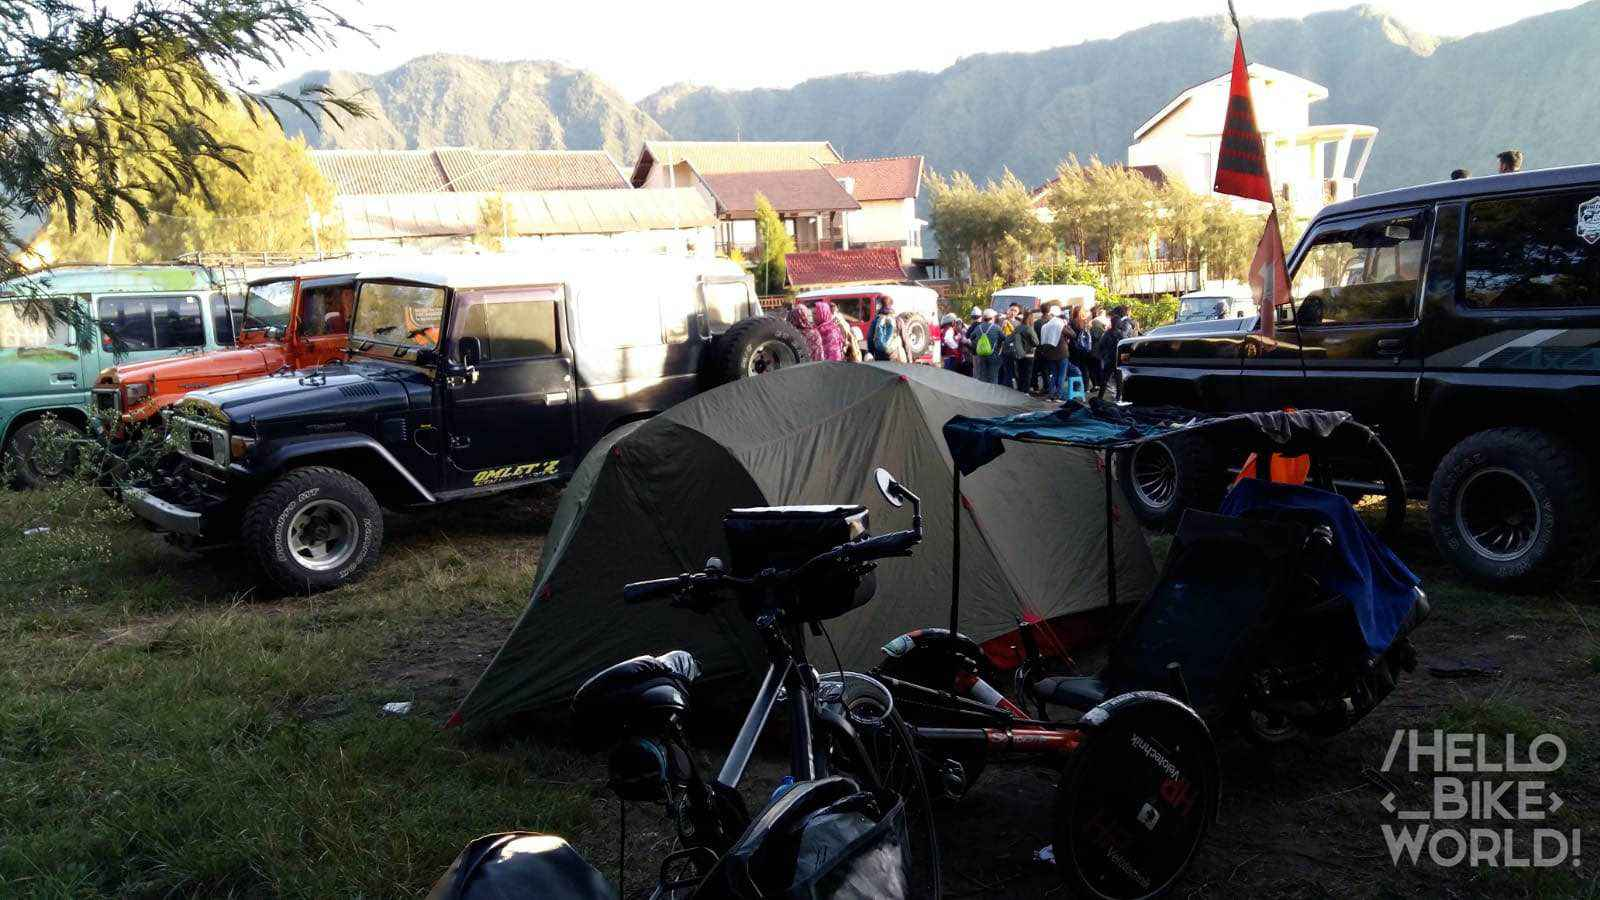 Un terrain de camping ou parking de jeep !?